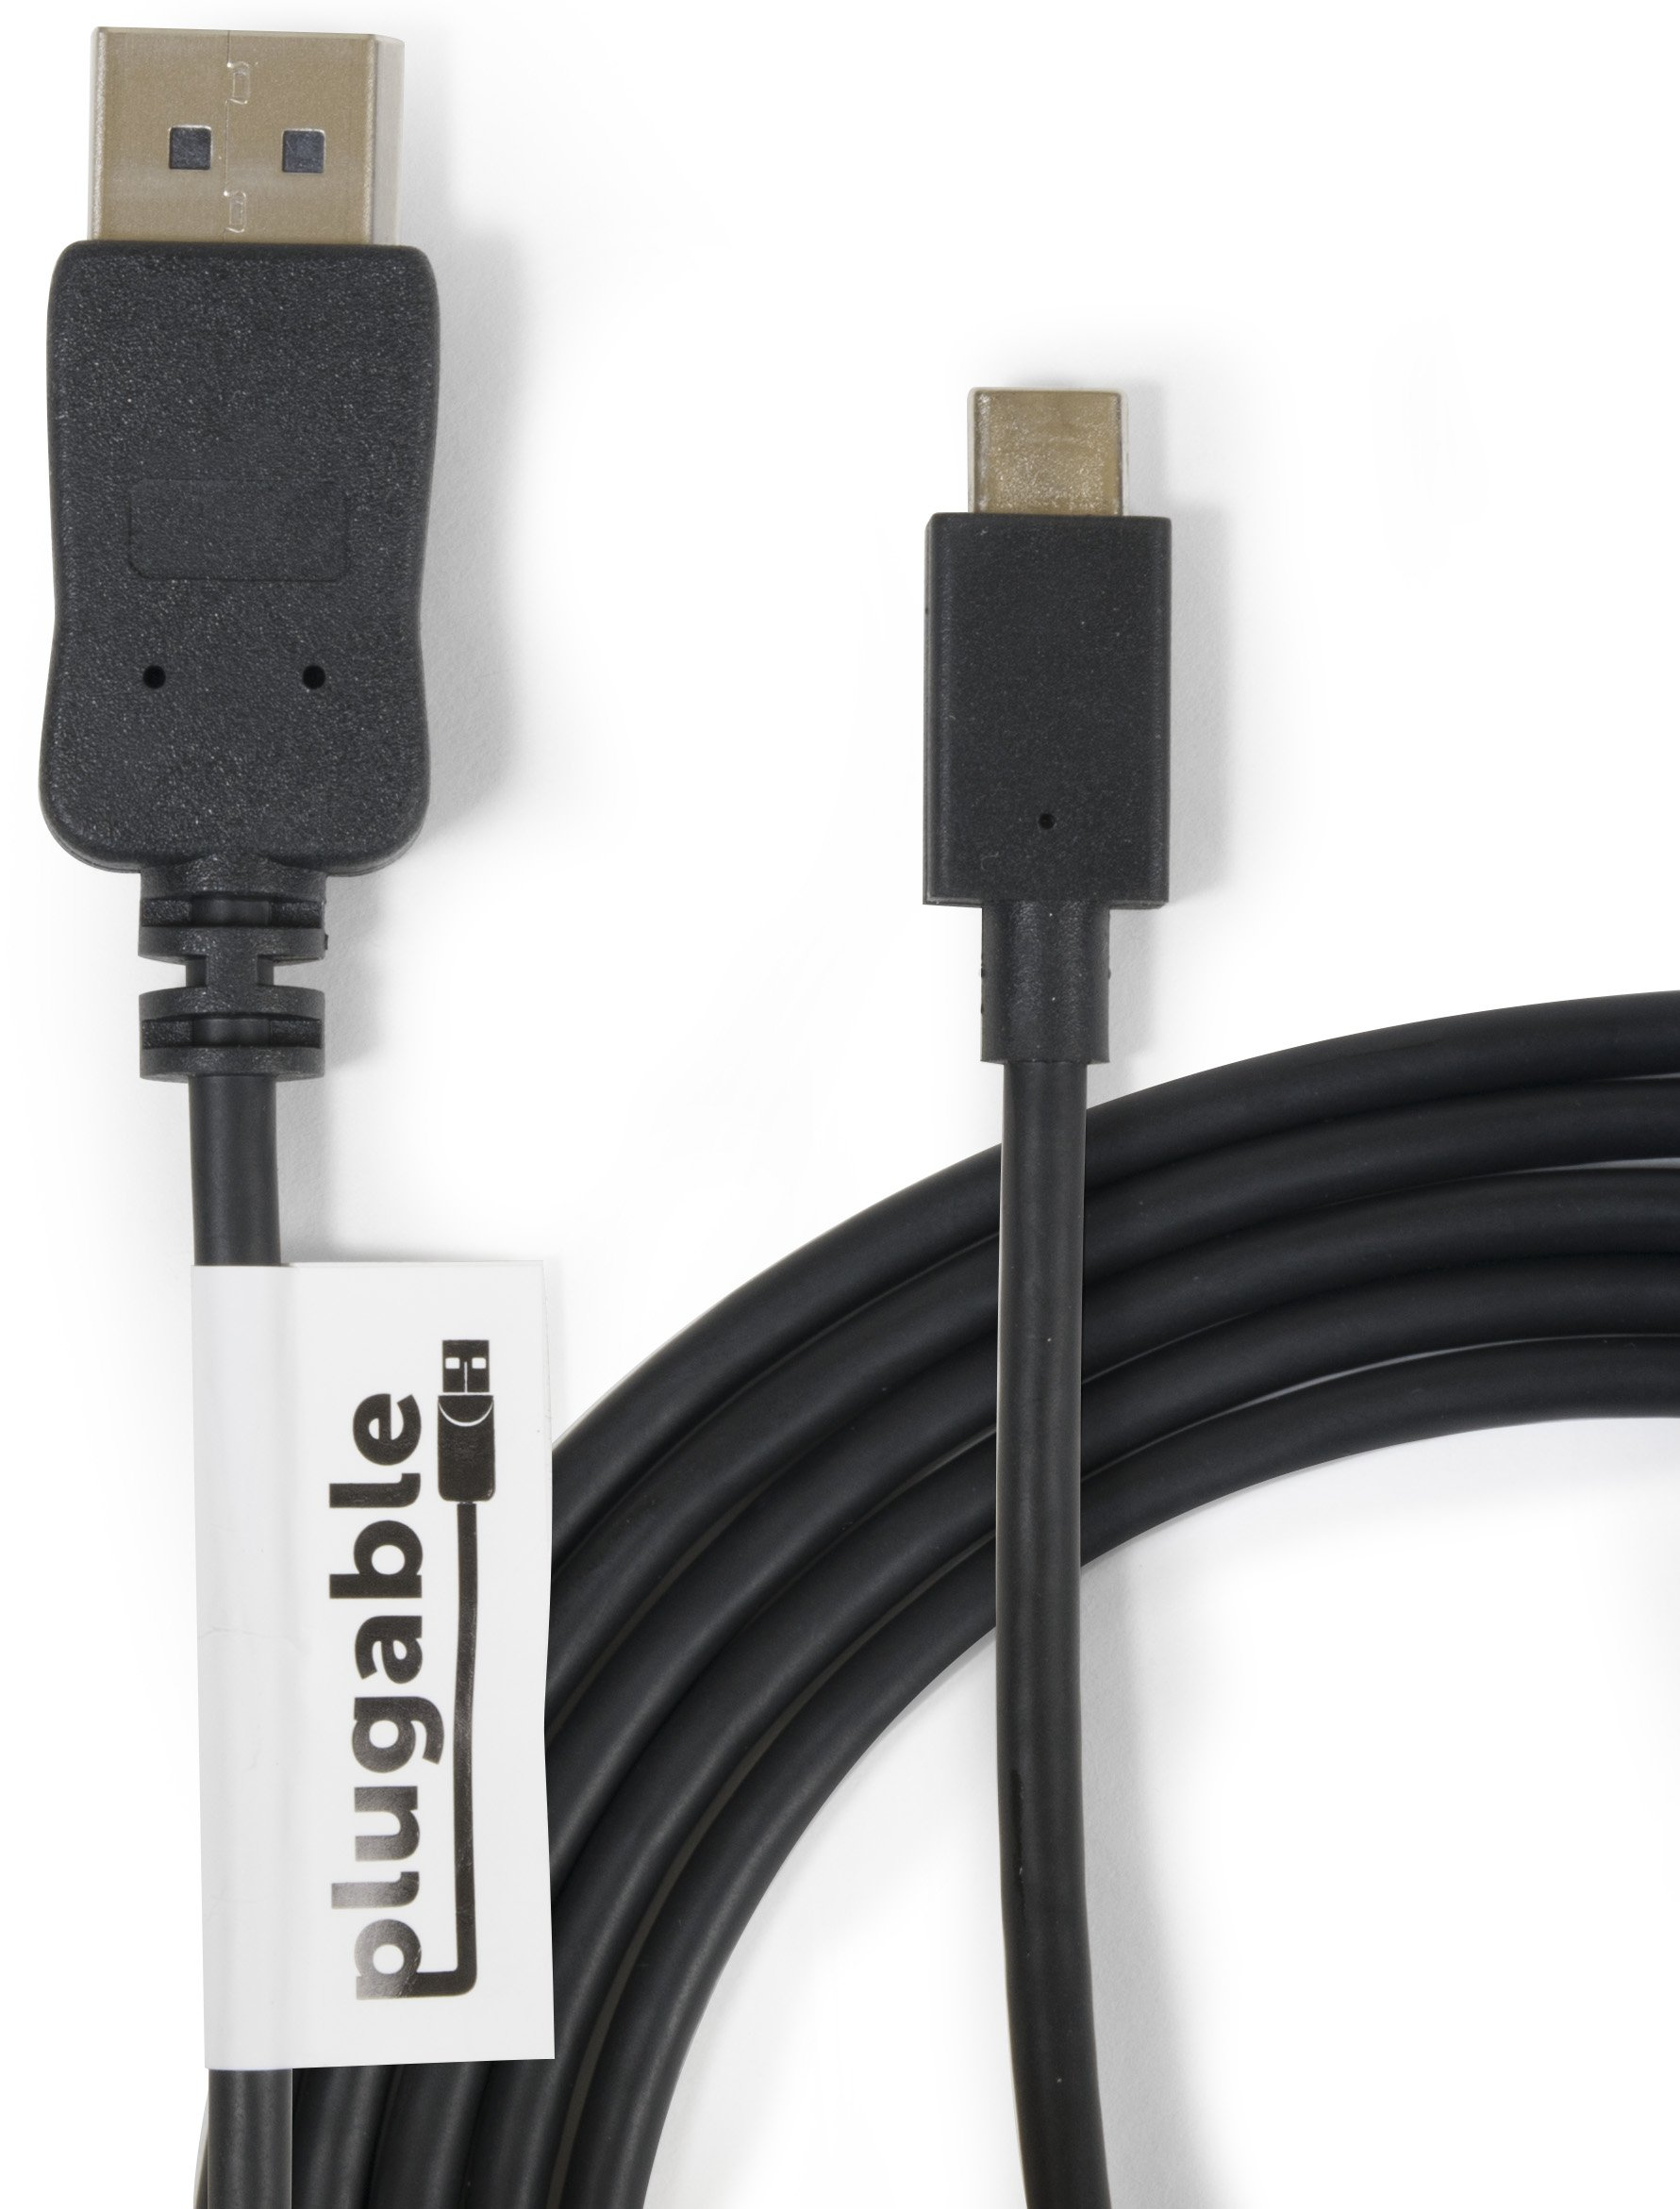 Plugable USB C to DisplayPort Adapter Cable - 6ft (1.8m) - Supports 4K at 60Hz